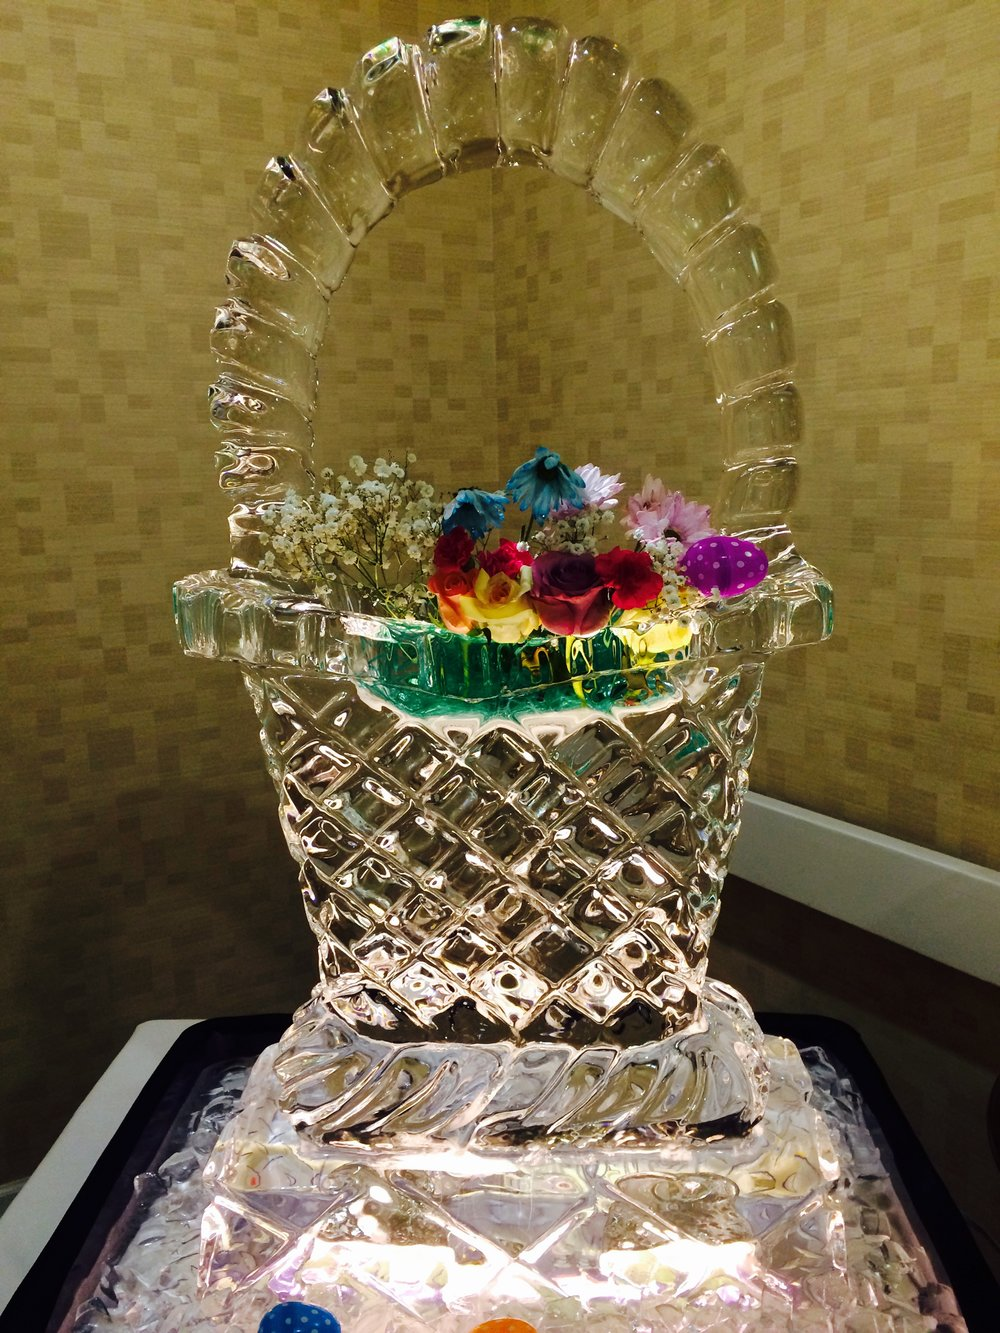 This holiday basket decorated with ornamental flowers was a focal point for an Easter buffet.  Faithfully replicating the basket weave is a form or ice art.